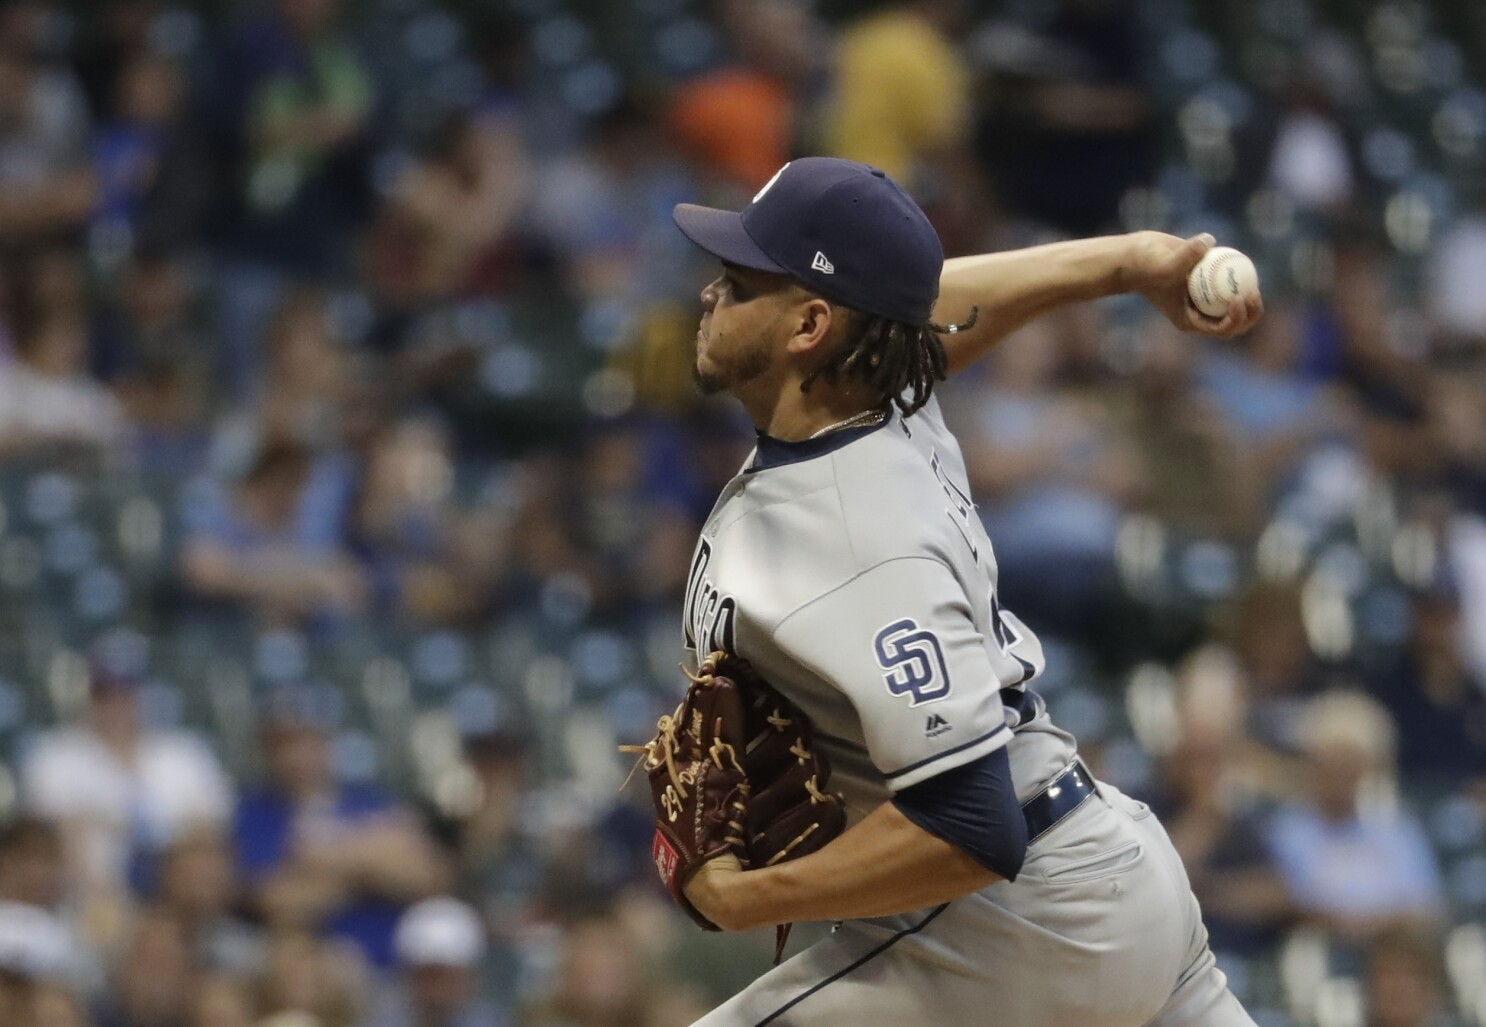 Dinelson Lamet strikes out 14, Padres beat Brewers for first win of road trip